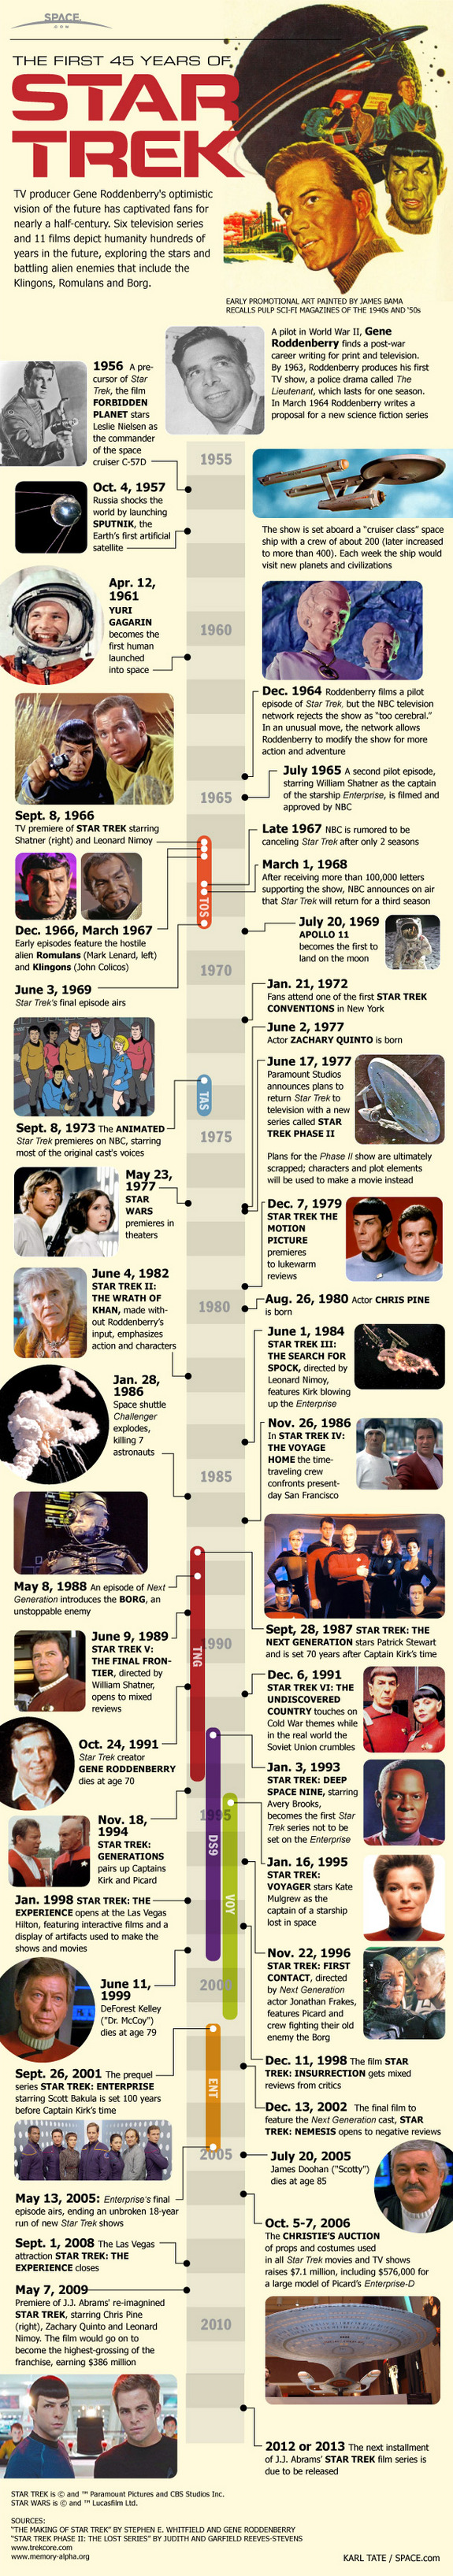 Star Trek: The First 45 Years (Infographic)